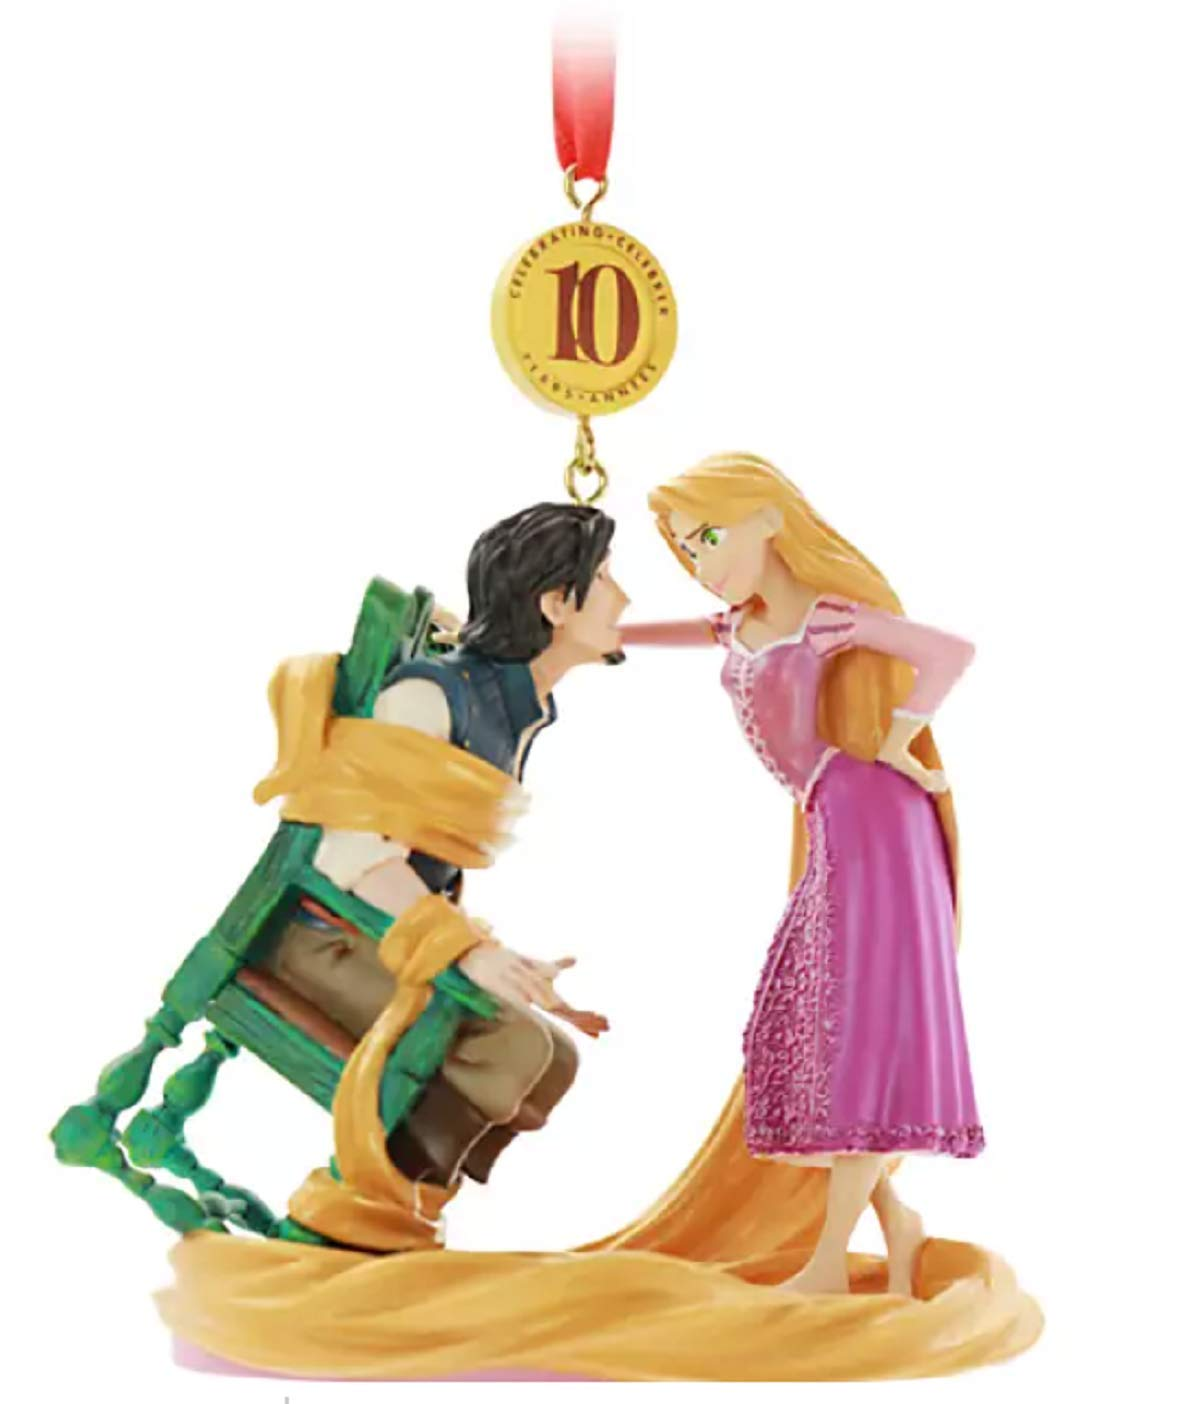 Sketchbook Tangled Legacy Ornament – 10th Anniversary – Limited Release